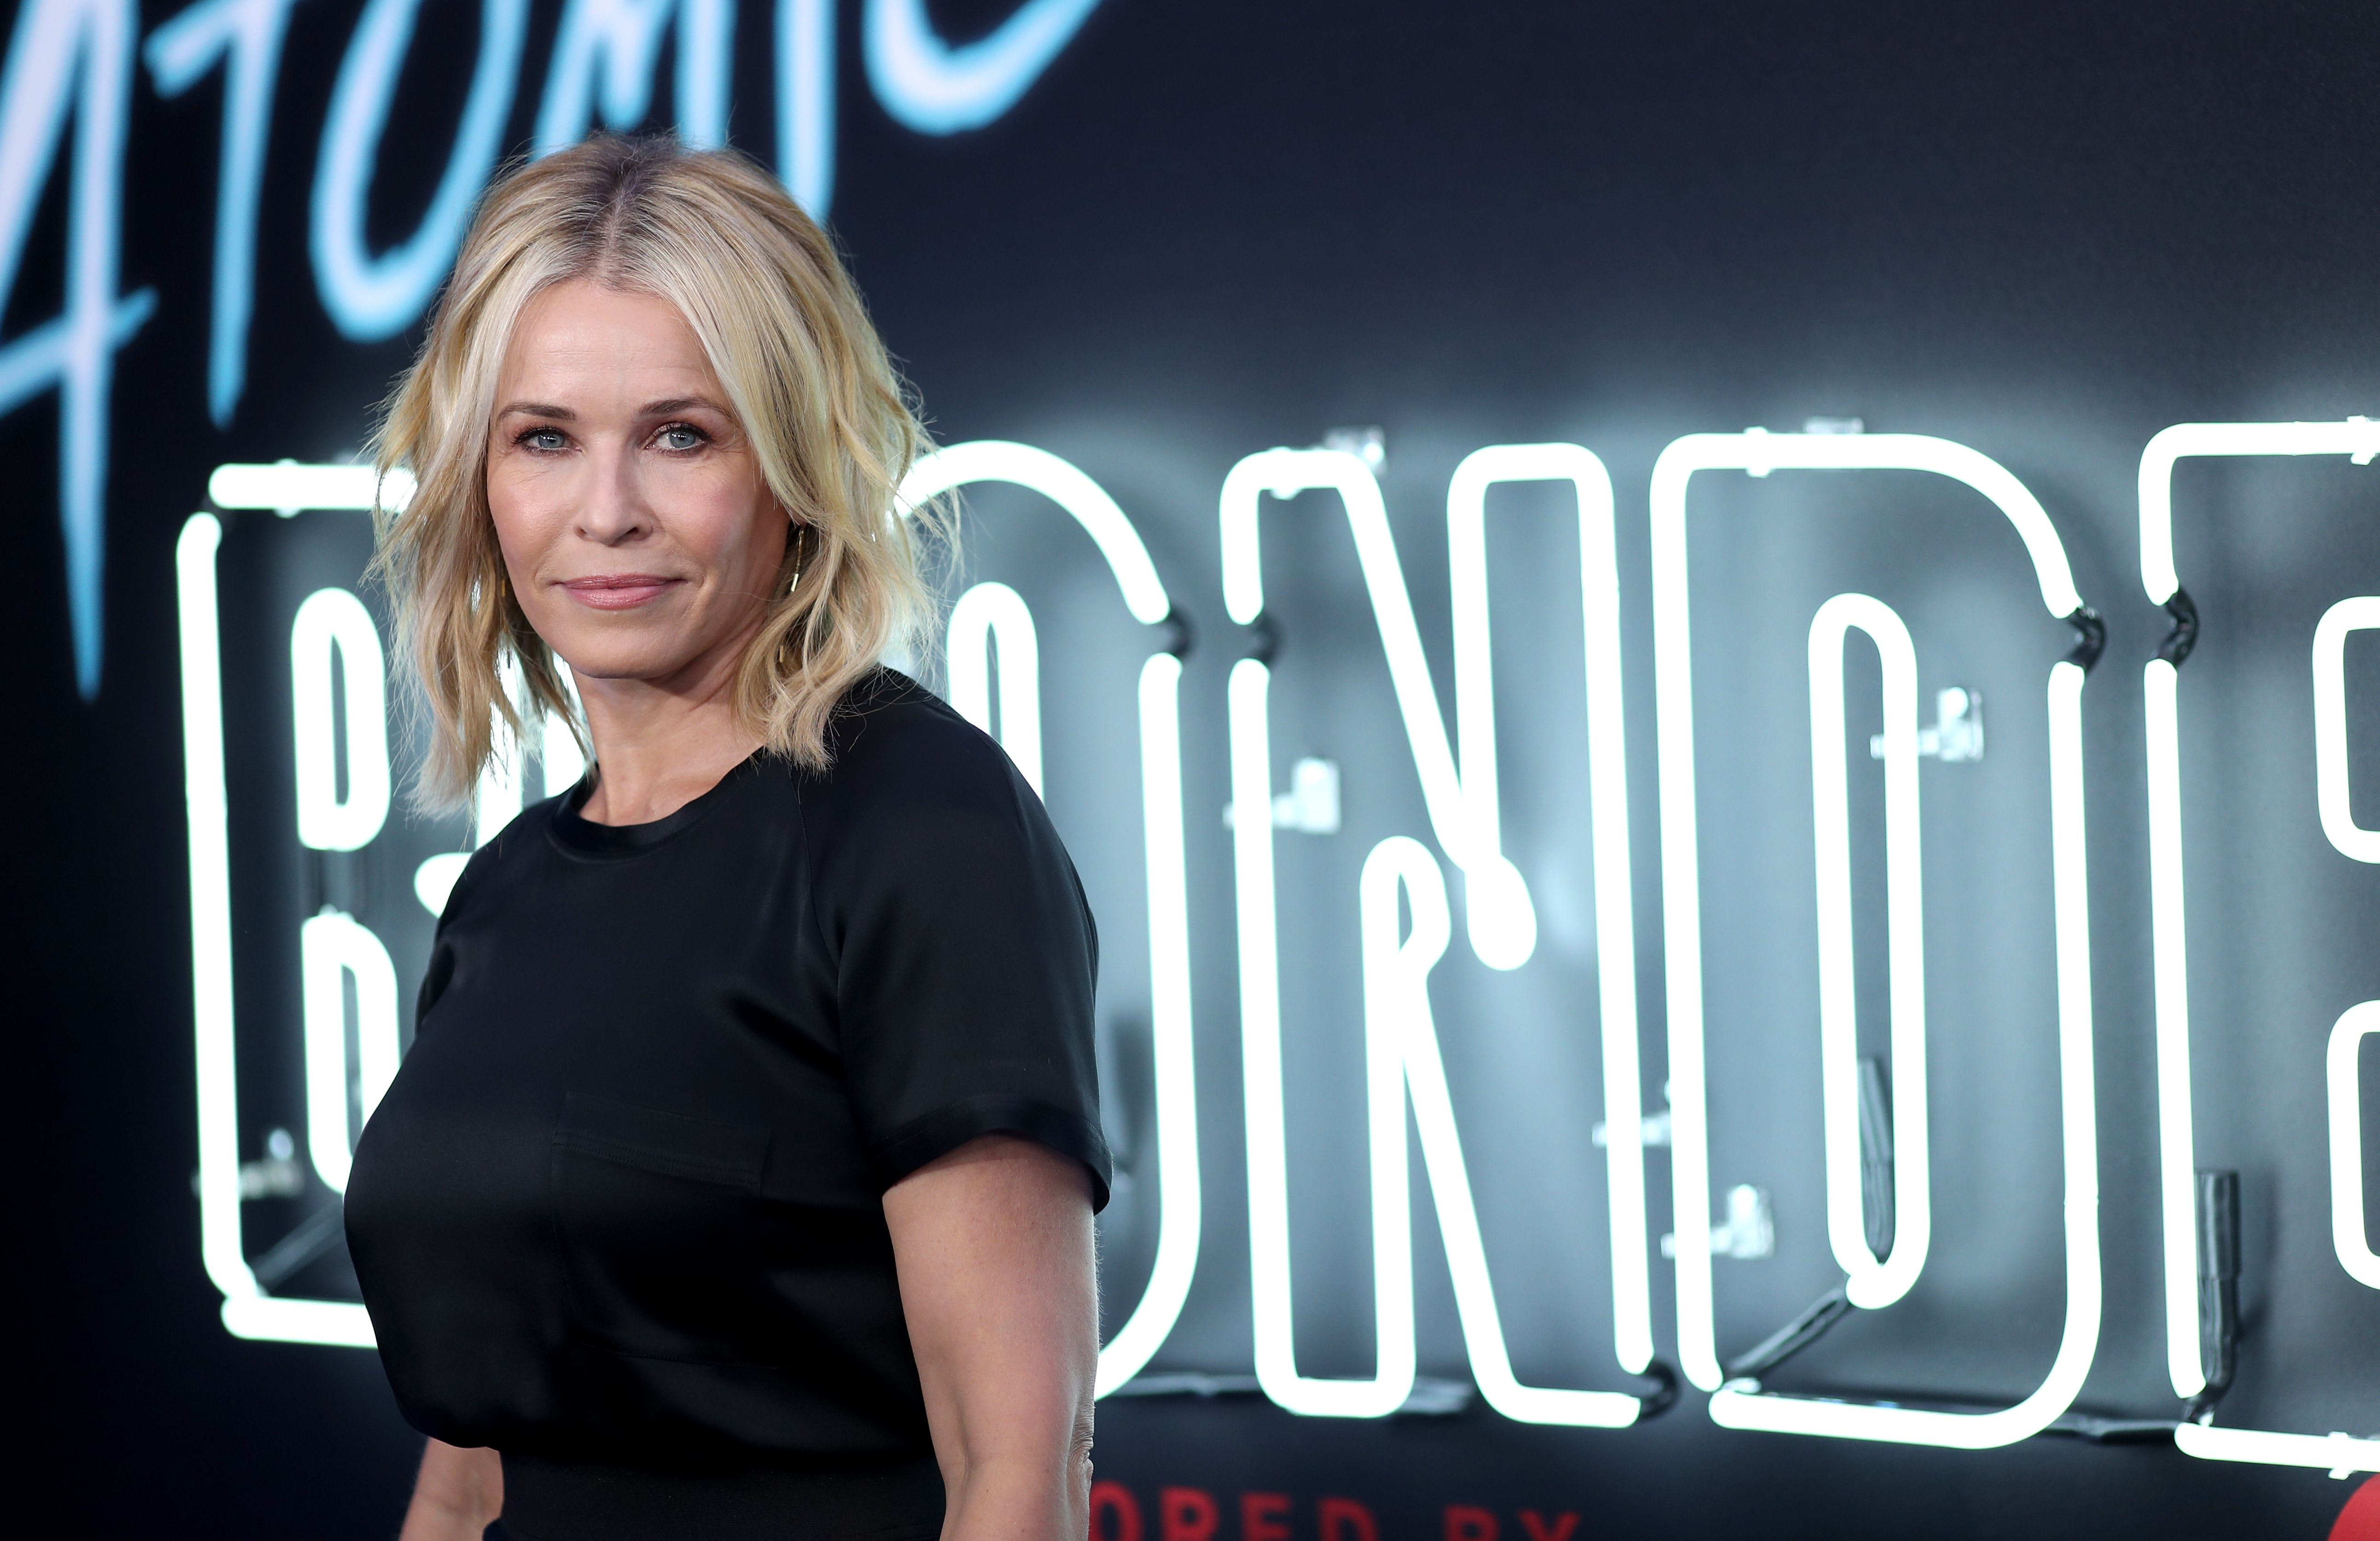 """Comedian Chelsea Handler at Focus Features' """"Atomic Blonde"""" premiere at The Theatre at Ace Hotel on July 24, 2017 